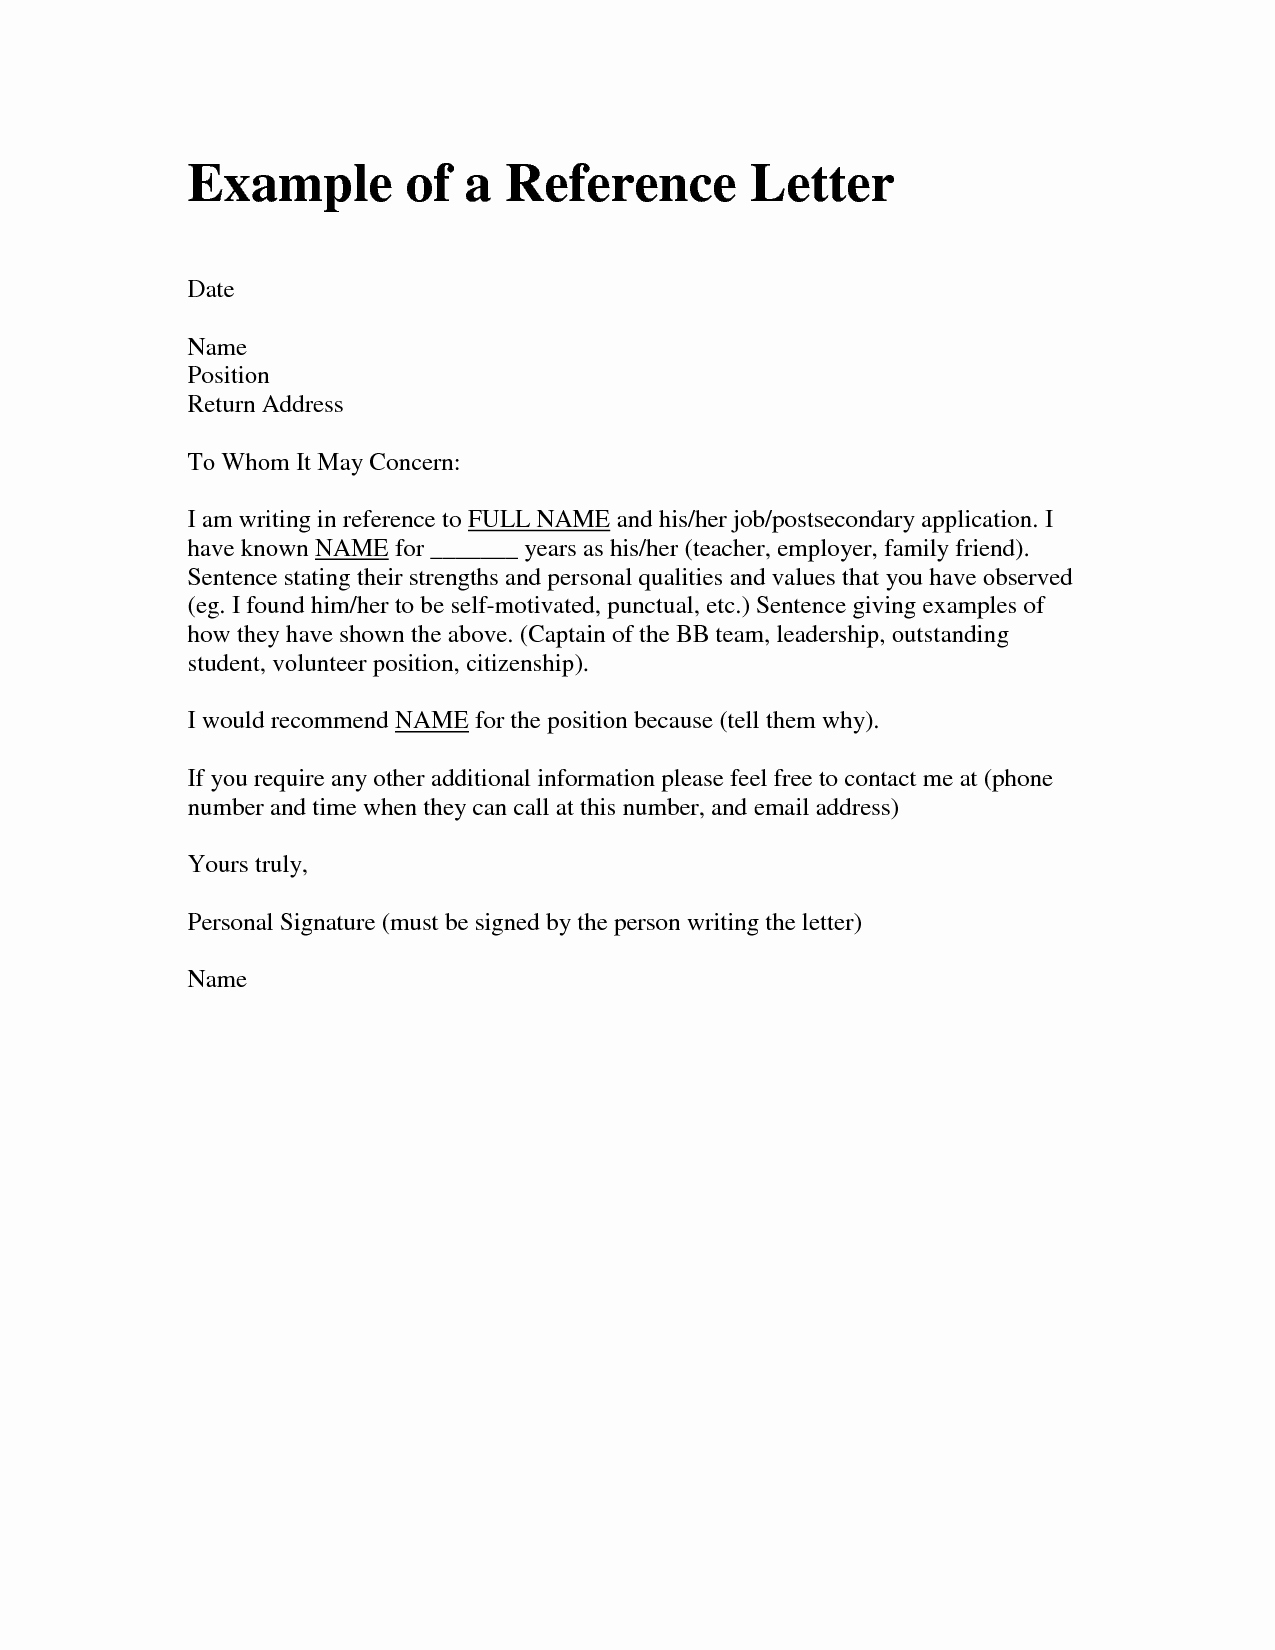 Free Sample Letter Of Recommendation Unique Personal Character Reference Letter for A Friend Sample